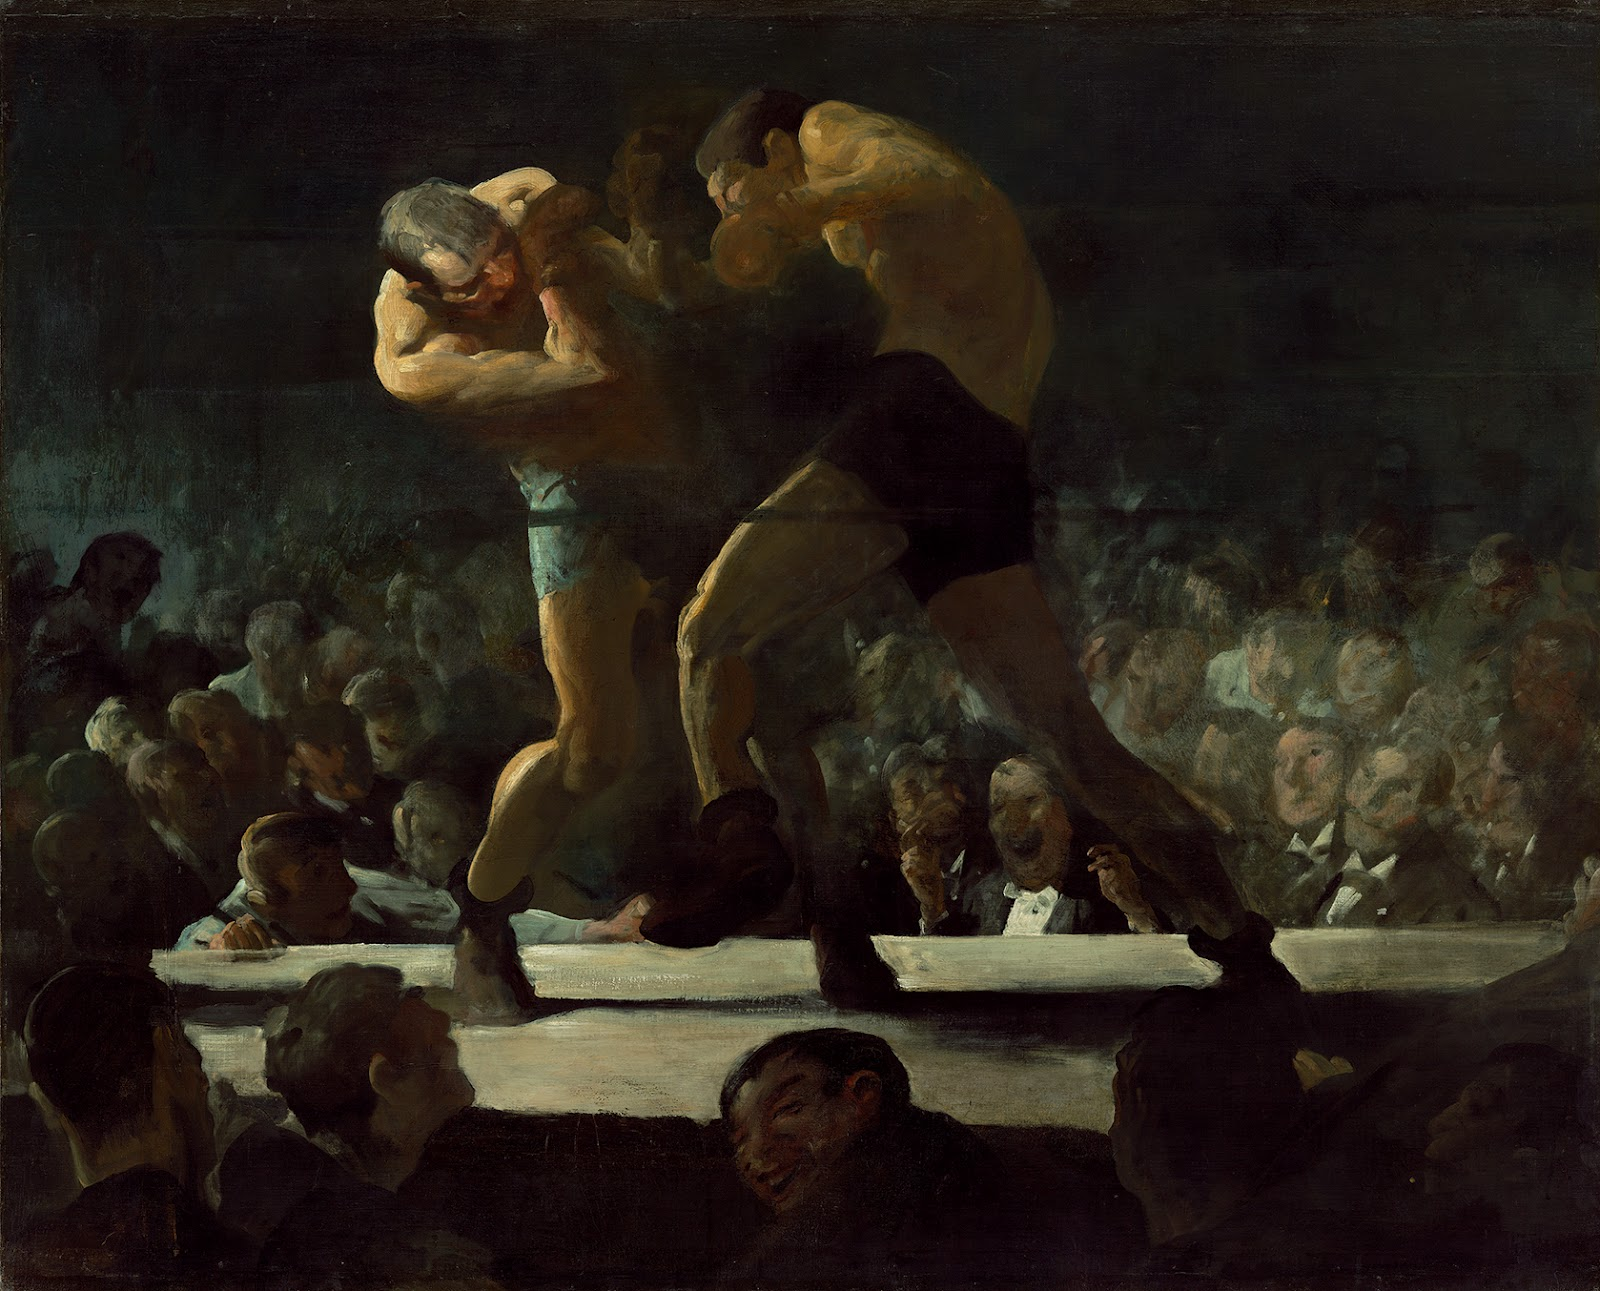 the life and works of george wesley bellows George wesley bellows was a highly acclaimed american artist, known for his bold, realist paintings and lithographs of new york city life.